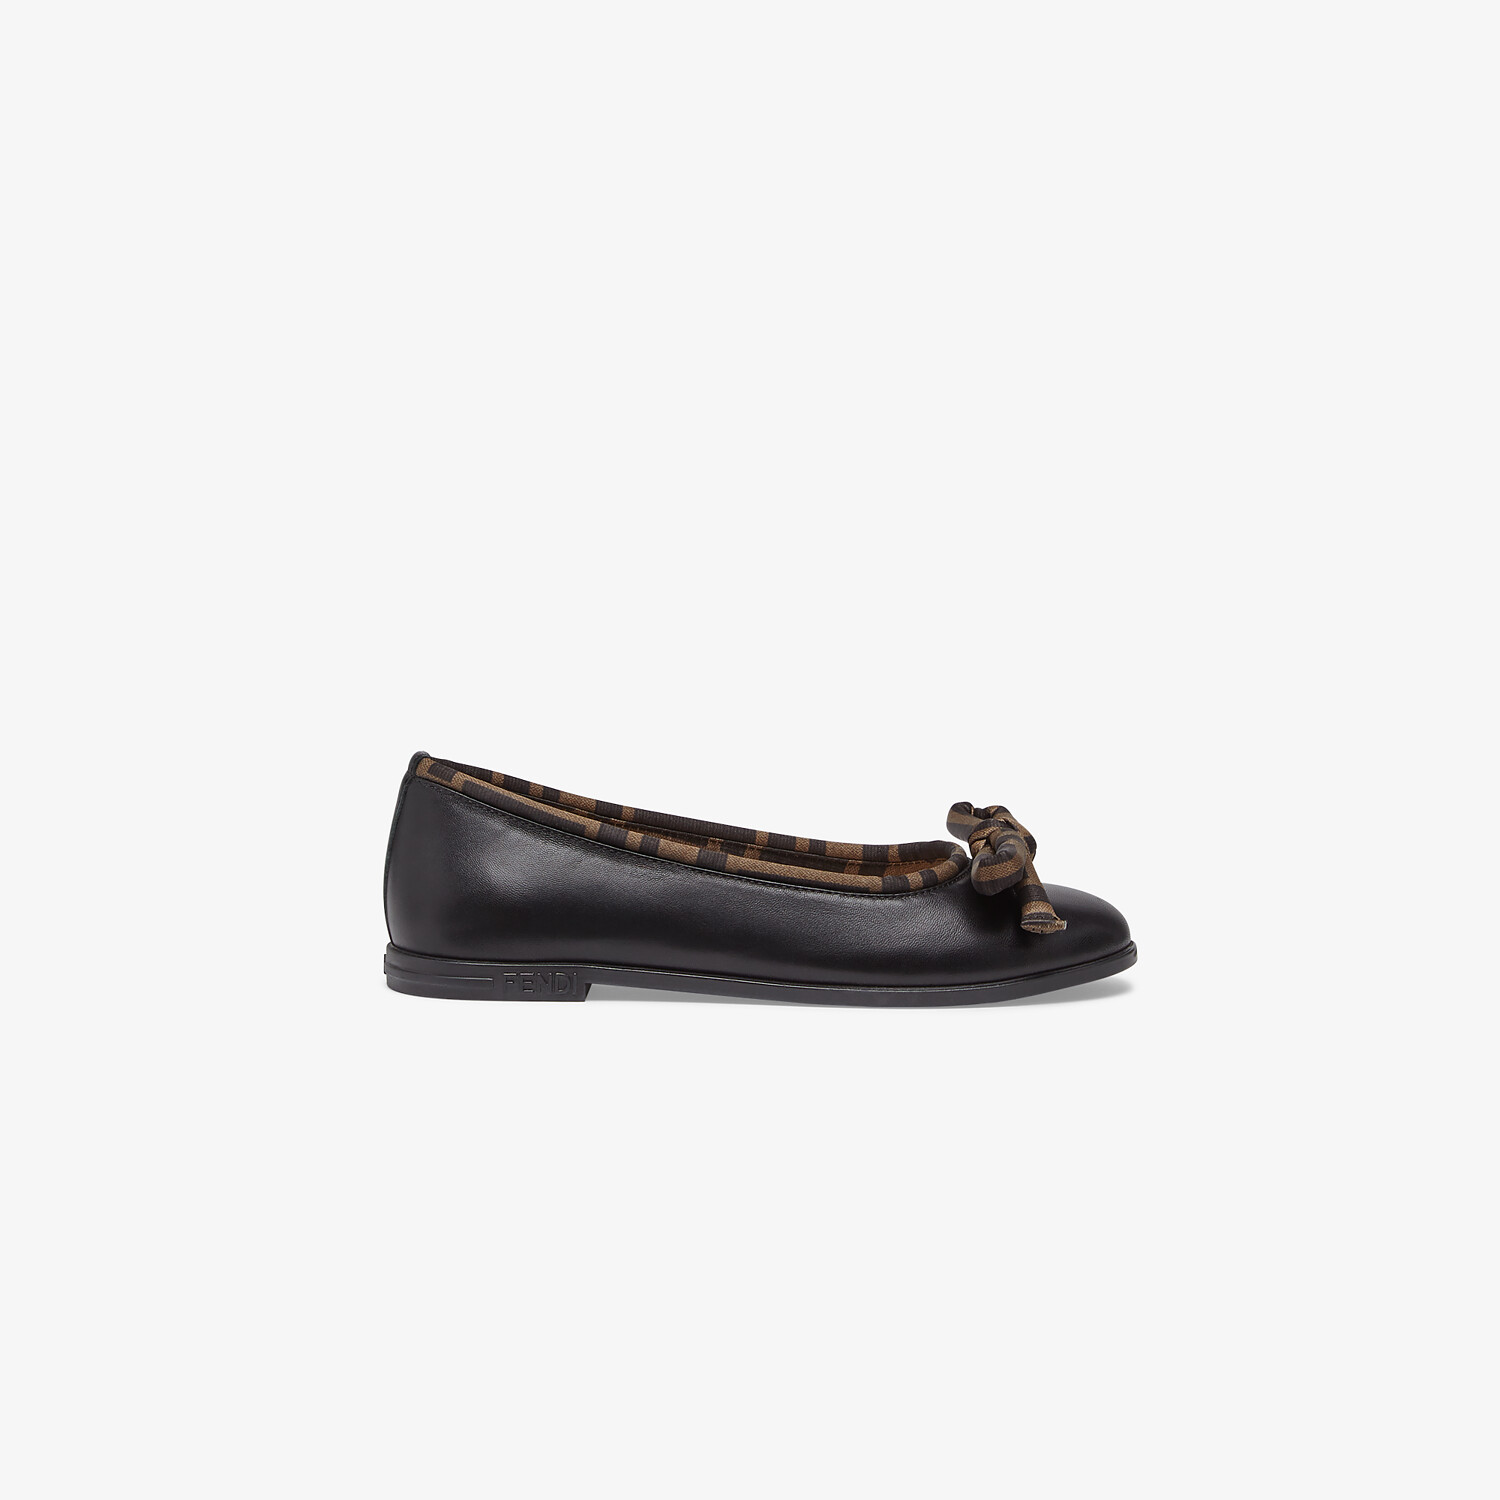 FENDI JUNIOR BALLERINAS - Black leather ballerinas with a touch of FF logo - view 1 detail